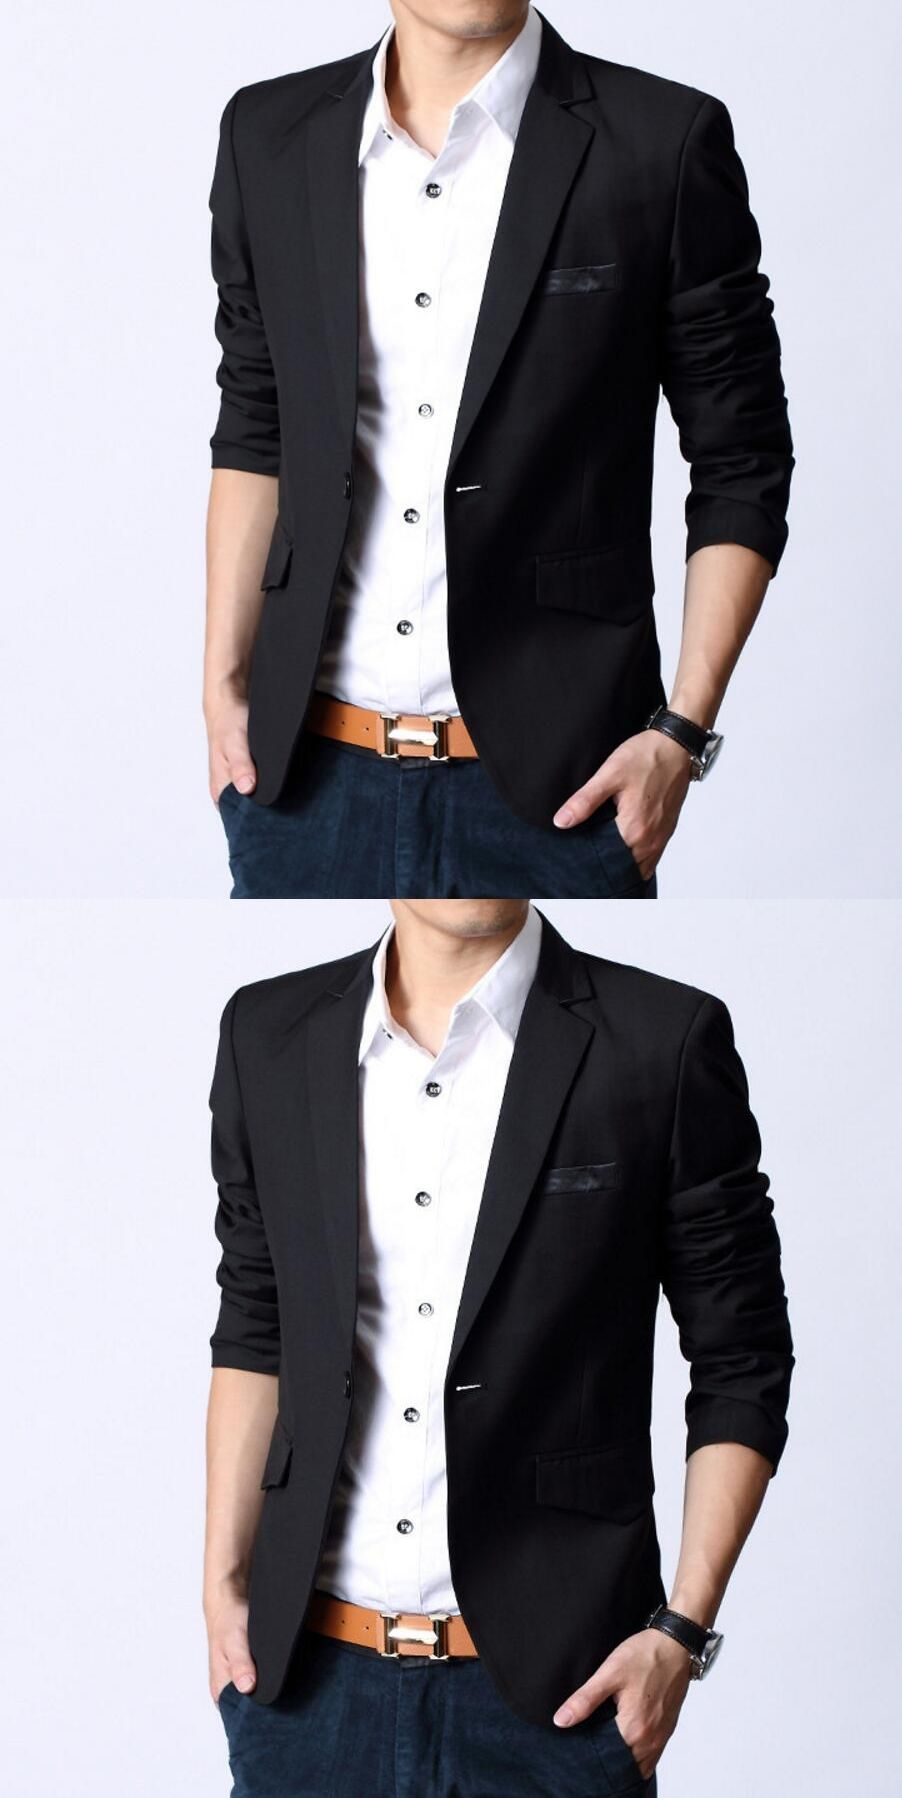 551521683d5 Fashion Korean Slim Fit Man Suit Jacket Men s Clothing Slim Style Suits  Jean Black Business Sweatshirt High Quality